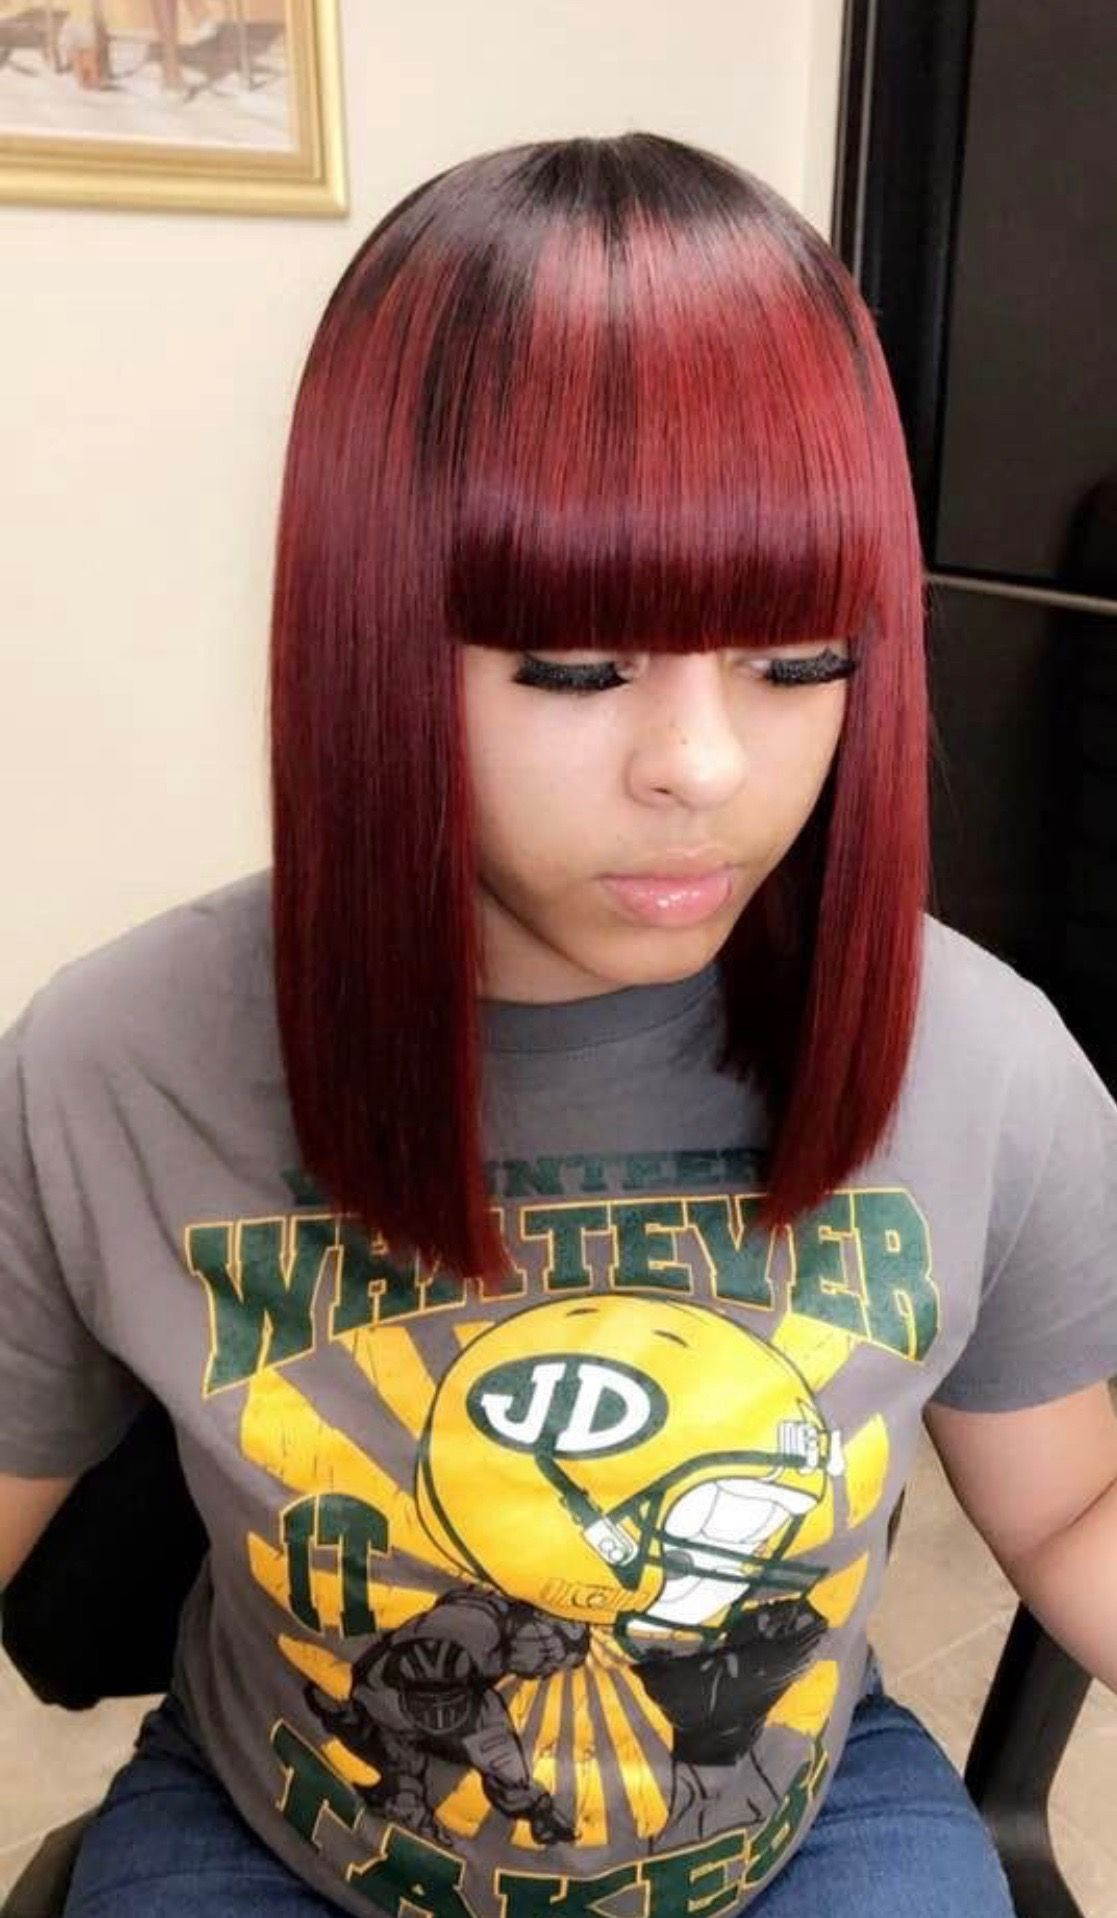 Sew In Weave Colored Burgundy With Bangs Bob Shoulder Length With Closure Quick Weave Hairstyles Short Hair Styles Medium Hair Styles